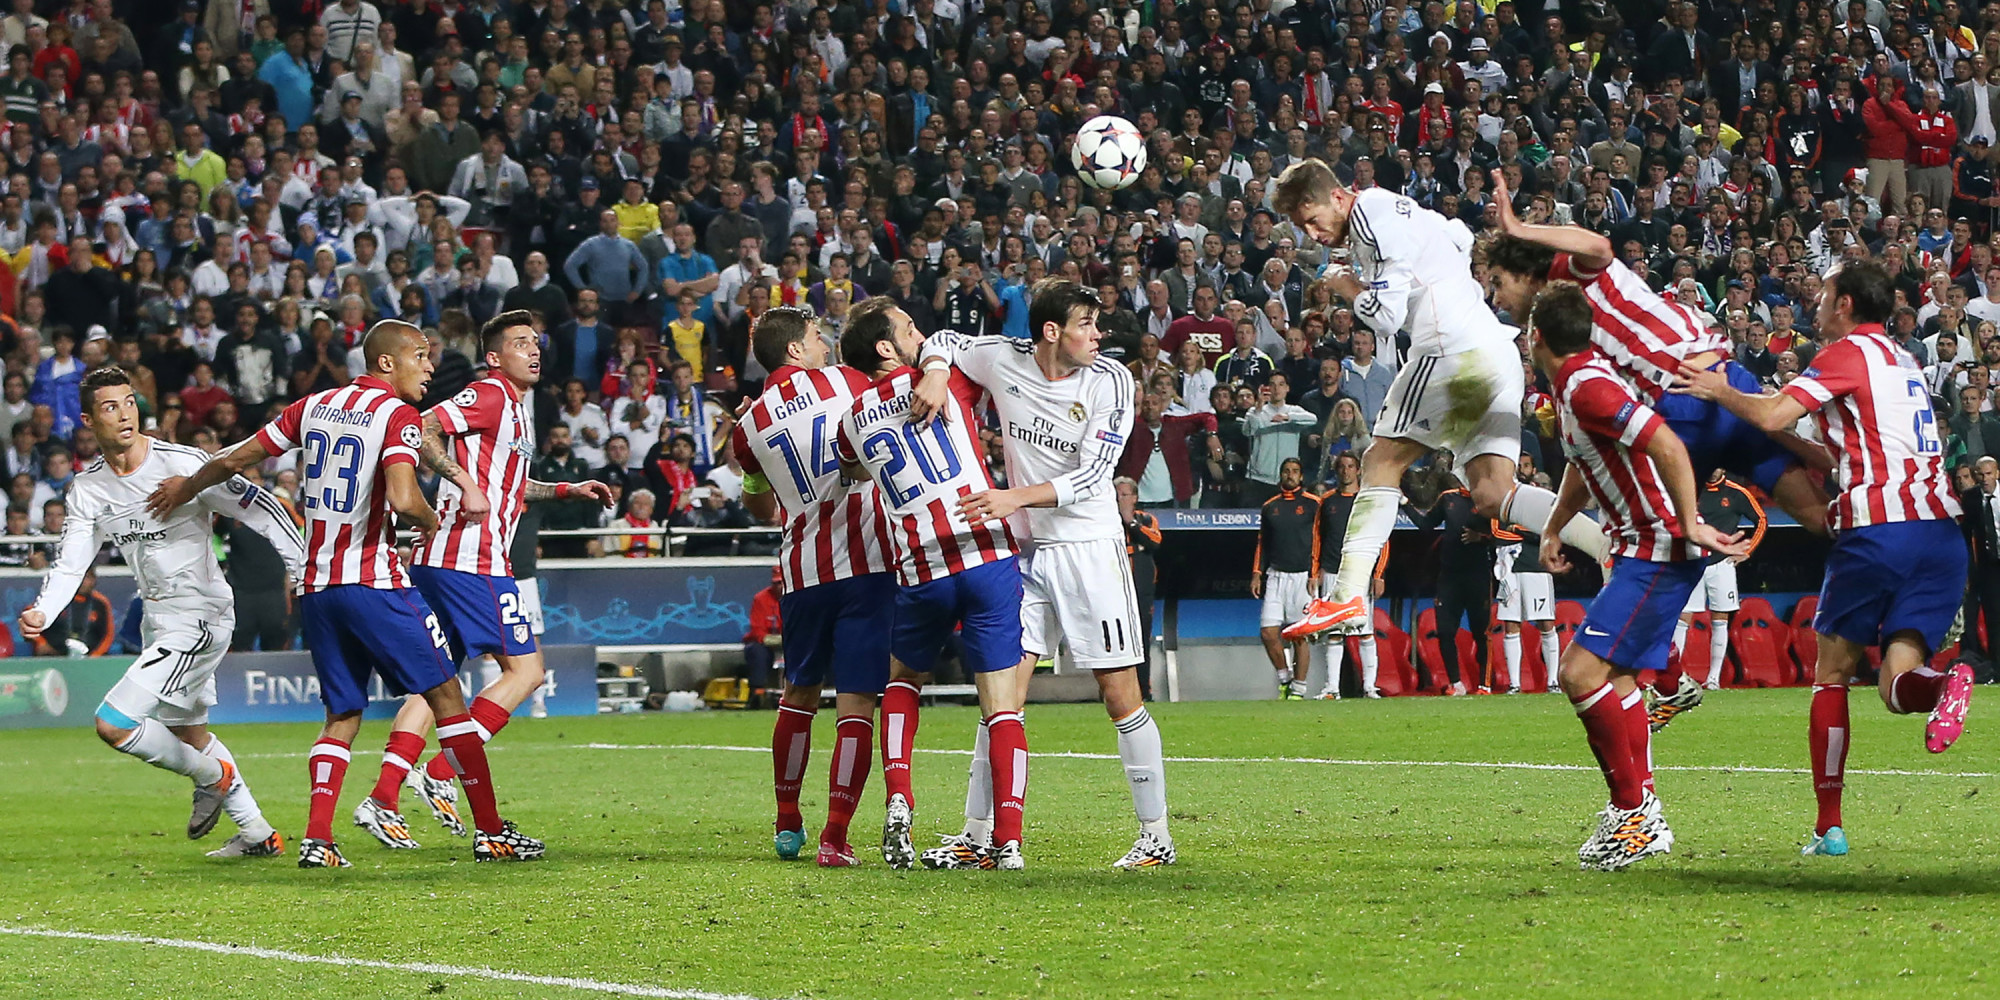 LISBON, PORTUGAL - MAY 24:  Sergio Ramos of Real Madrid scores during the UEFA Champions League Final match between Real Madrid and Athletico Madrid at The Estadio da Luz on May 24, 2014 in Lisbon, Portugal.  (Photo by Ian MacNicol/Getty Images)